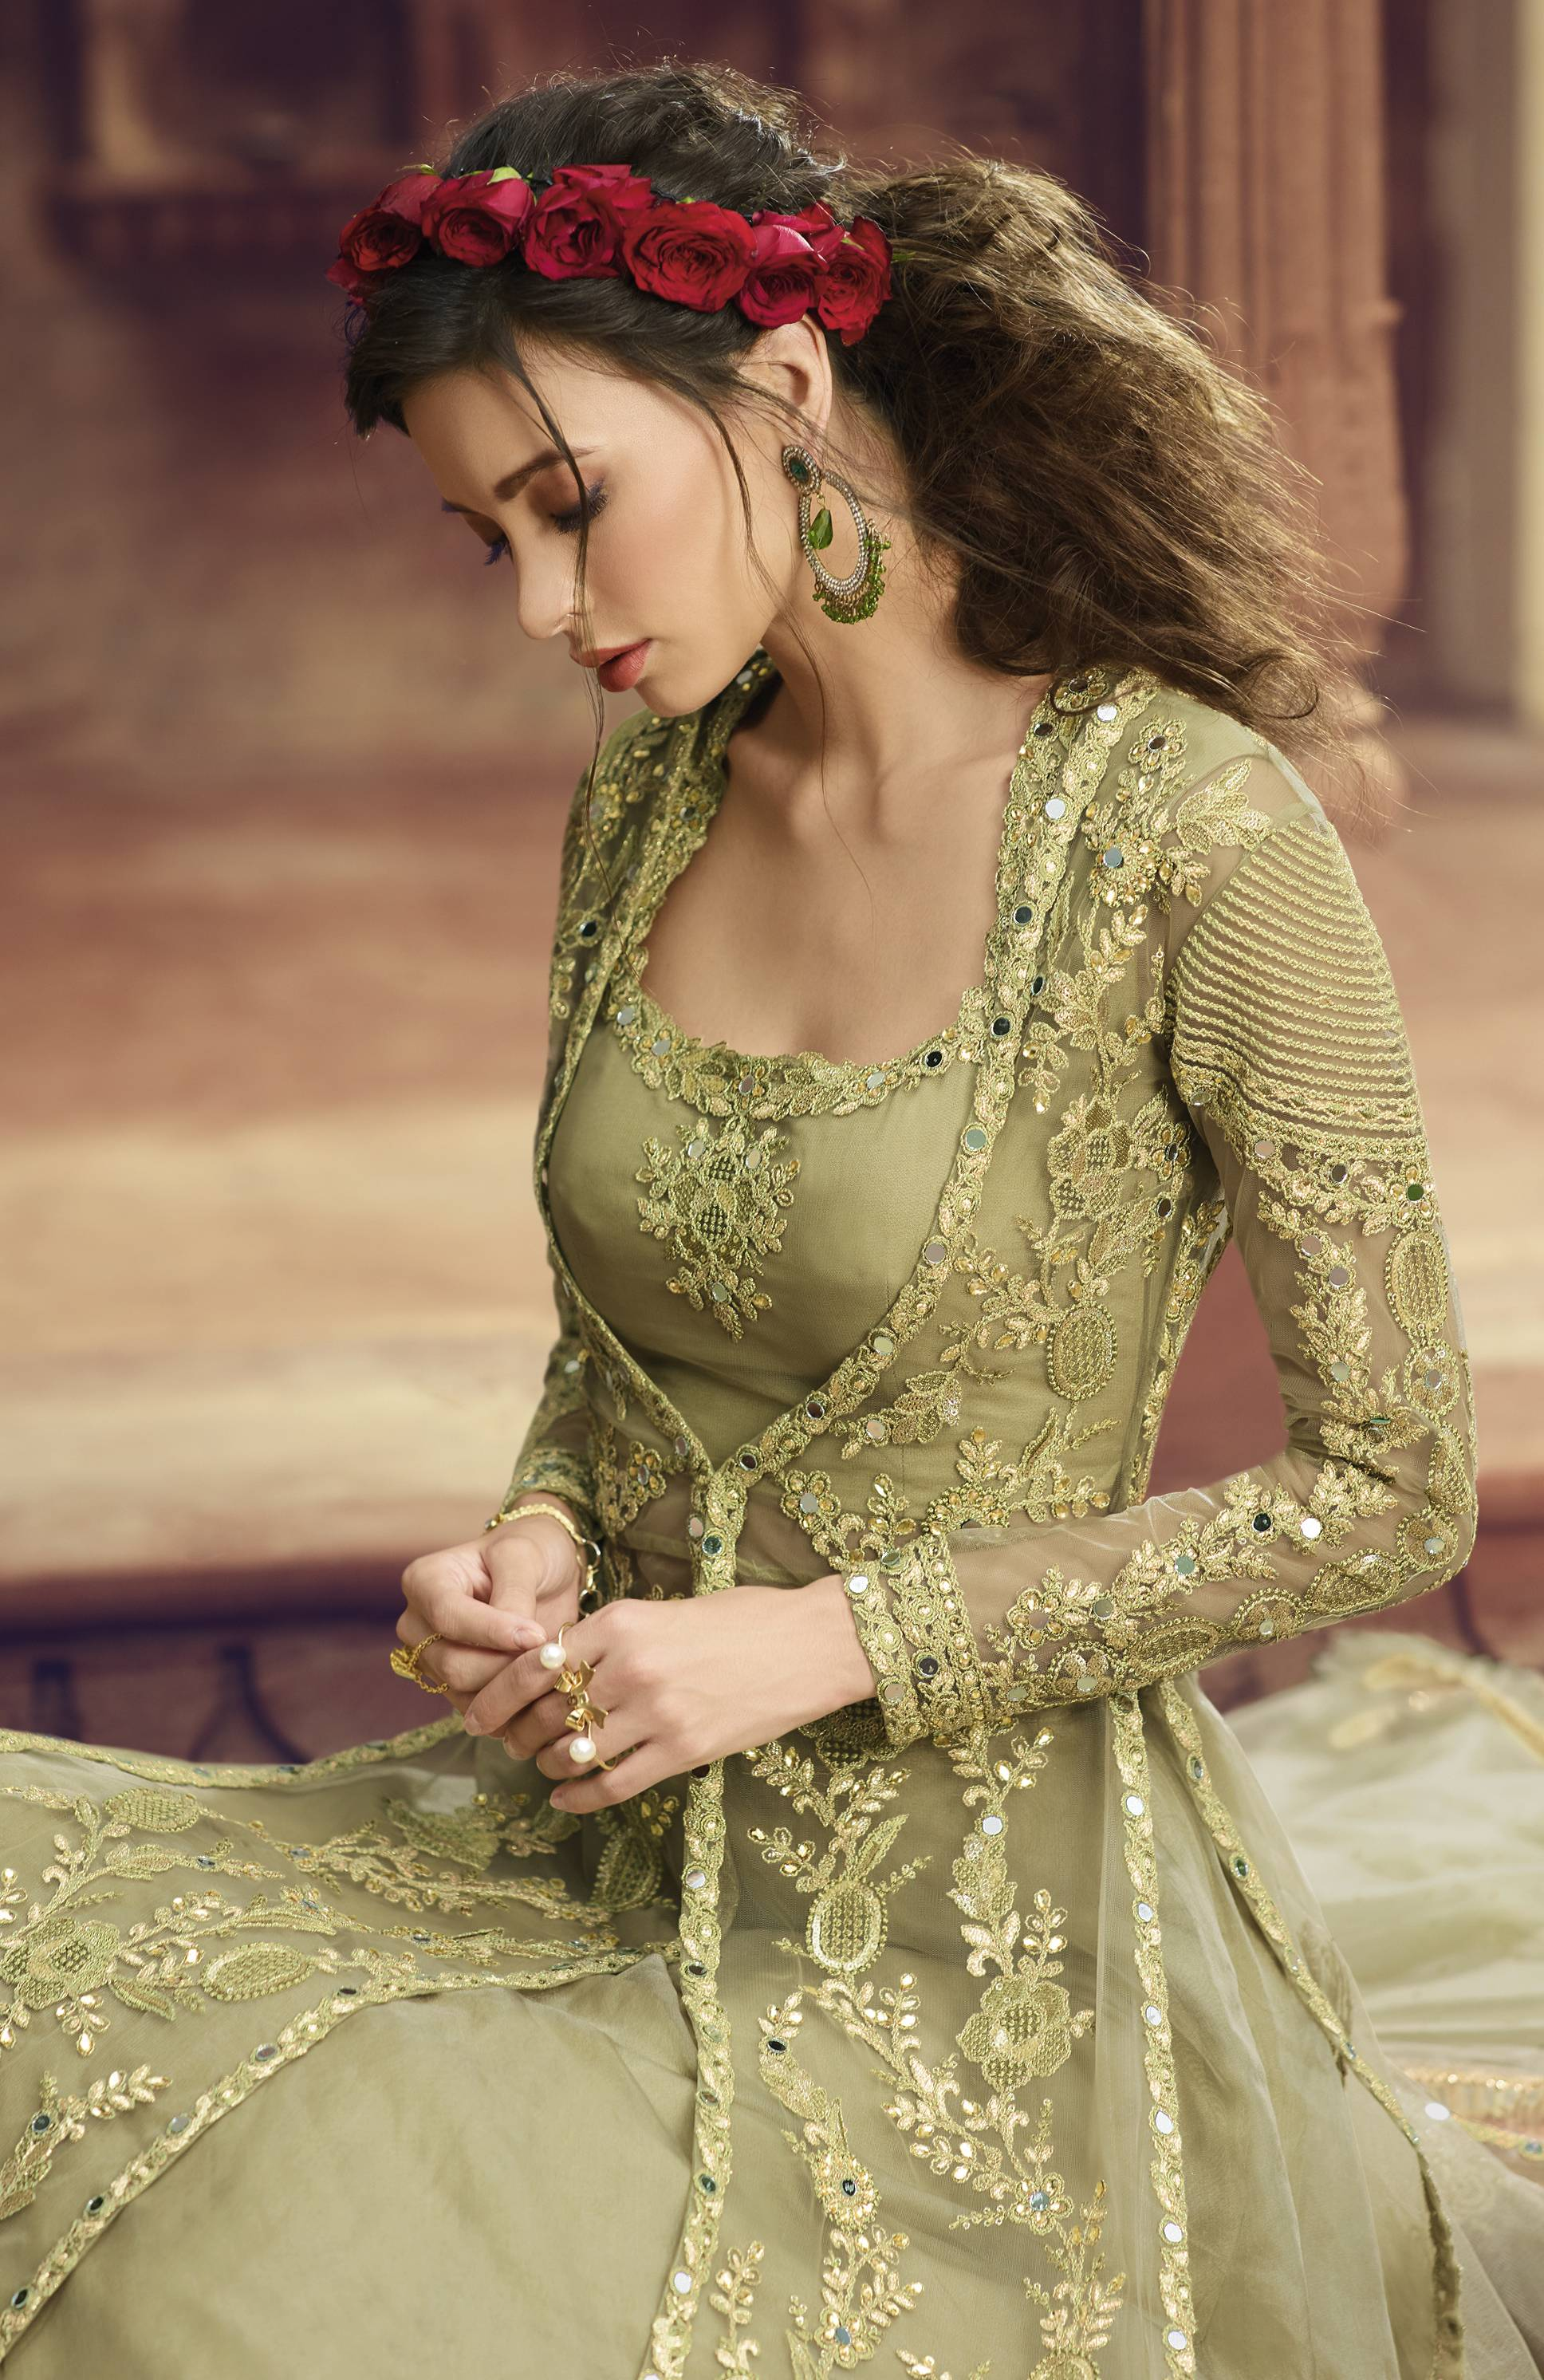 Pista Green Net Gown Style Indian New Design Salwar Kameez